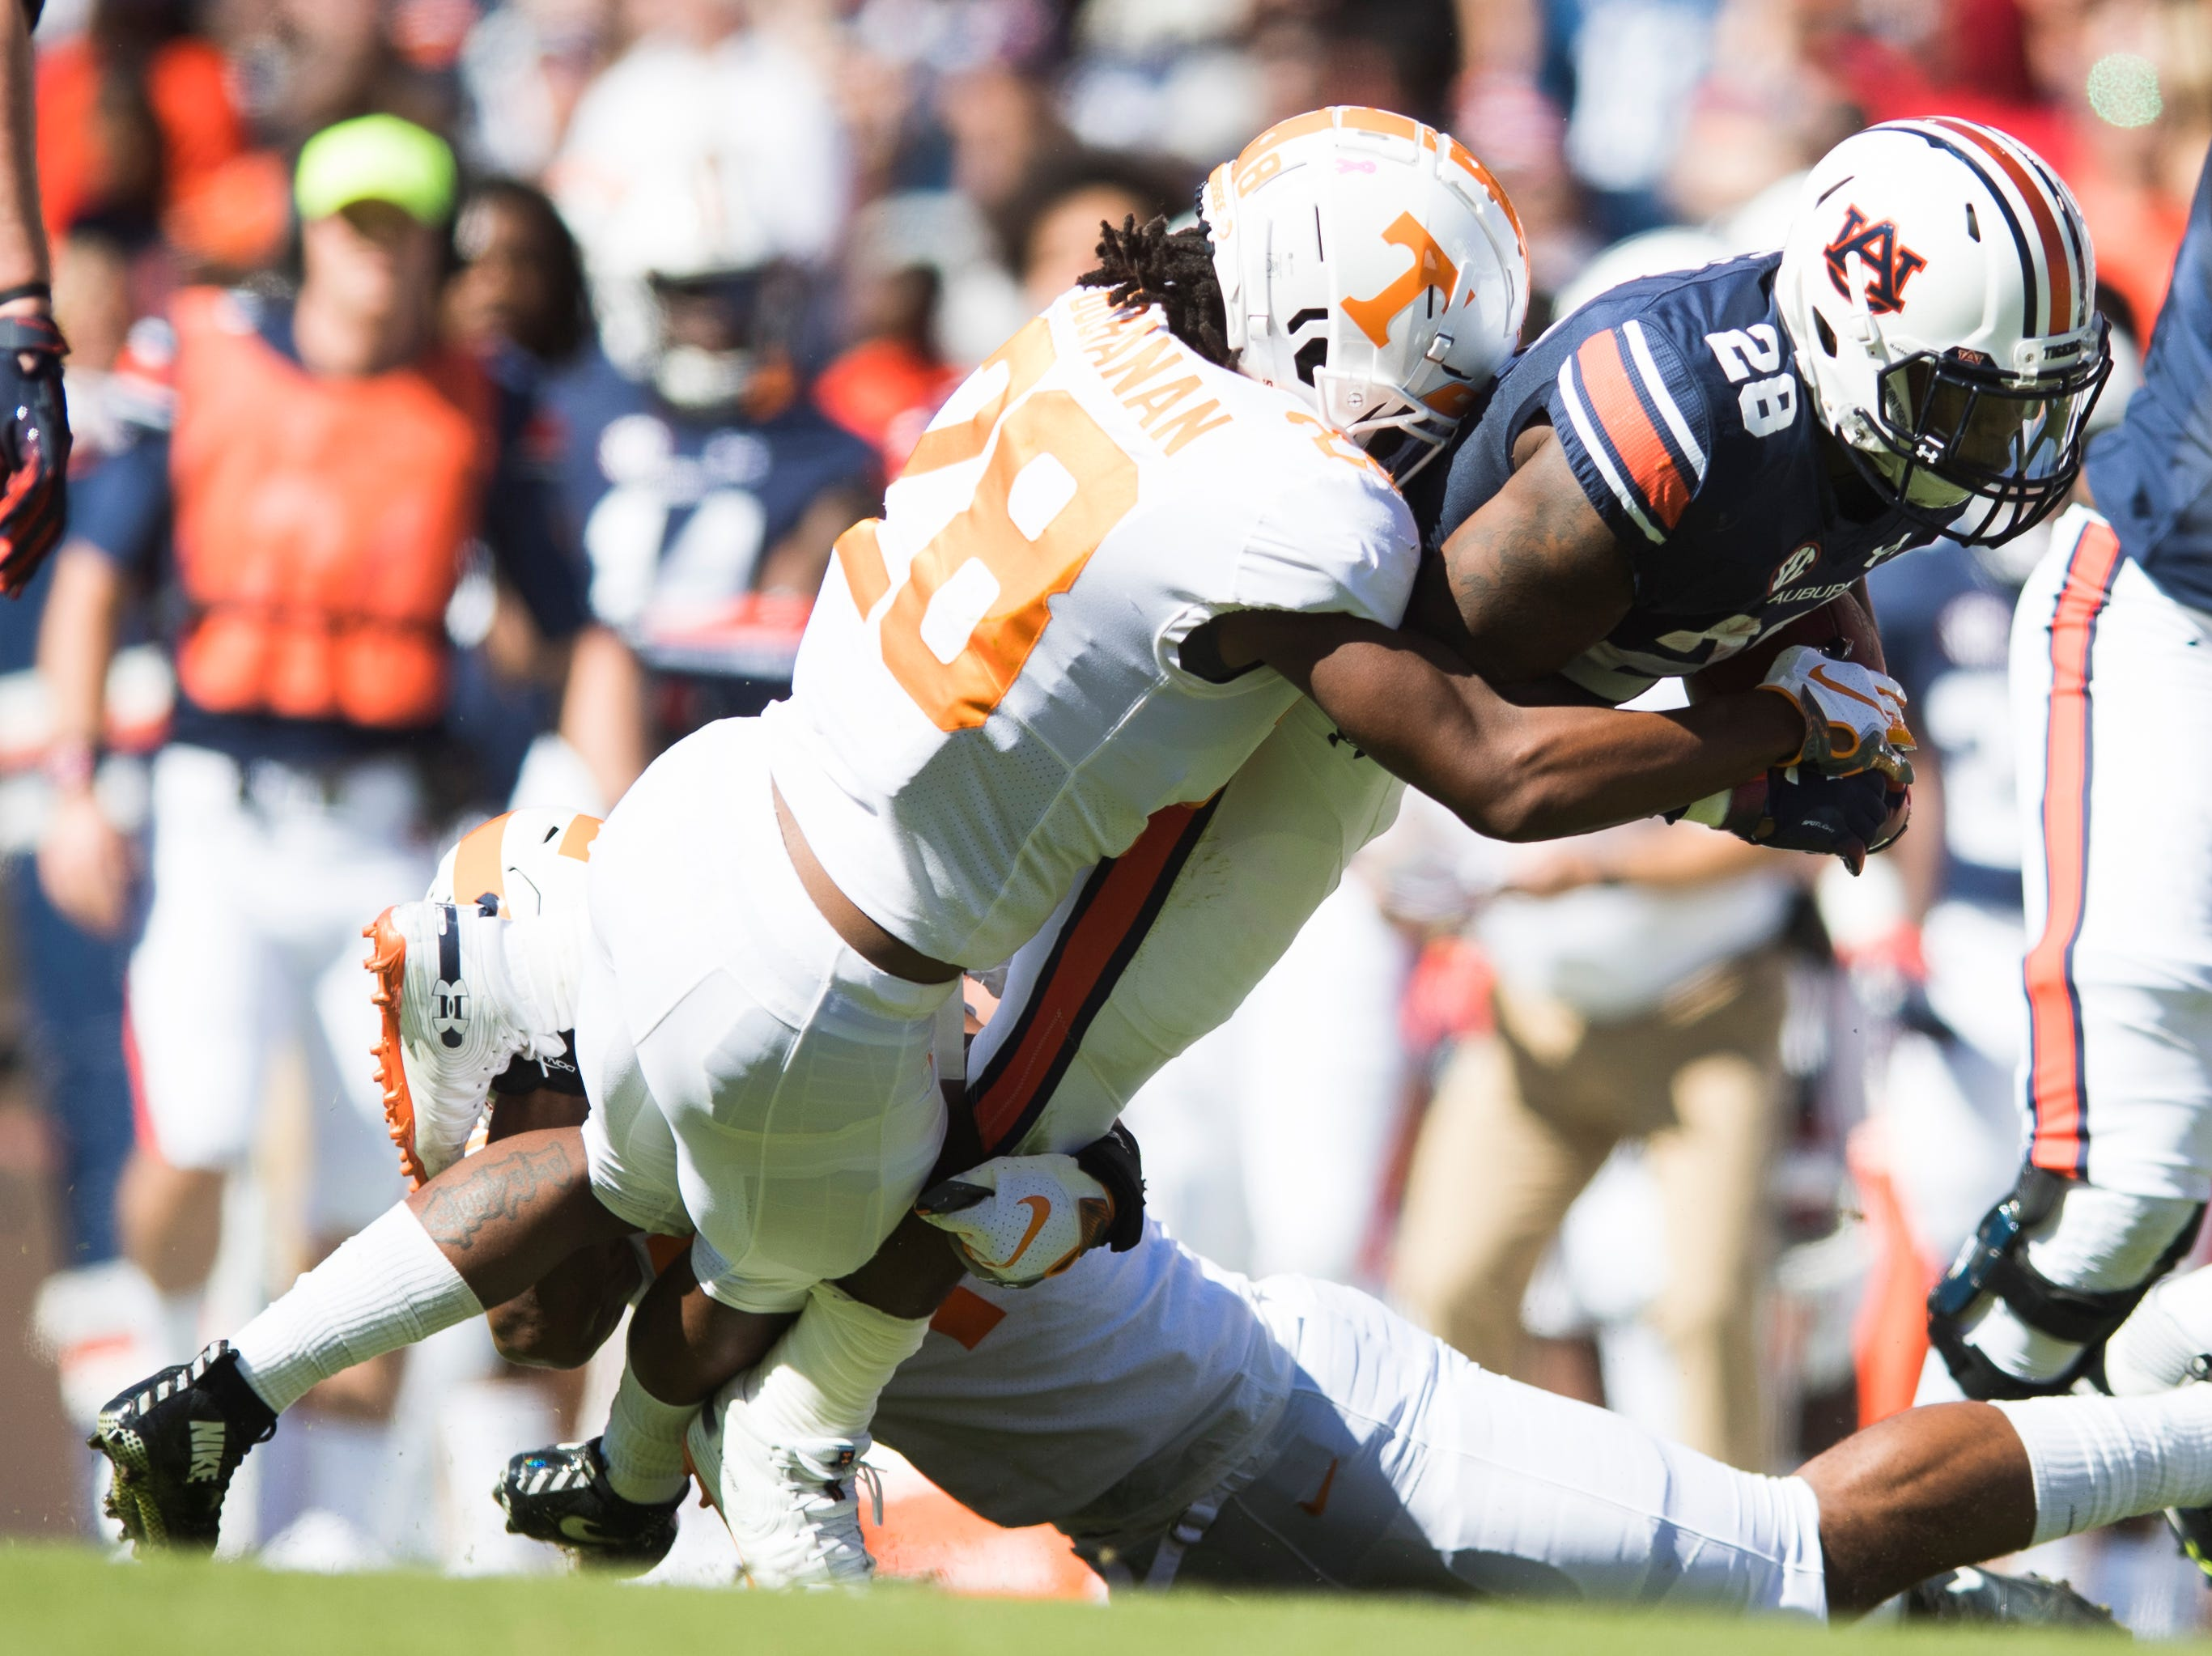 Tennessee defensive back Baylen Buchanan (28)  takes down Auburn running back JaTarvious Whitlow (28) during a game between Tennessee and Auburn at Jordan-Hare Stadium in Auburn, Alabama on Saturday, October 13, 2018.